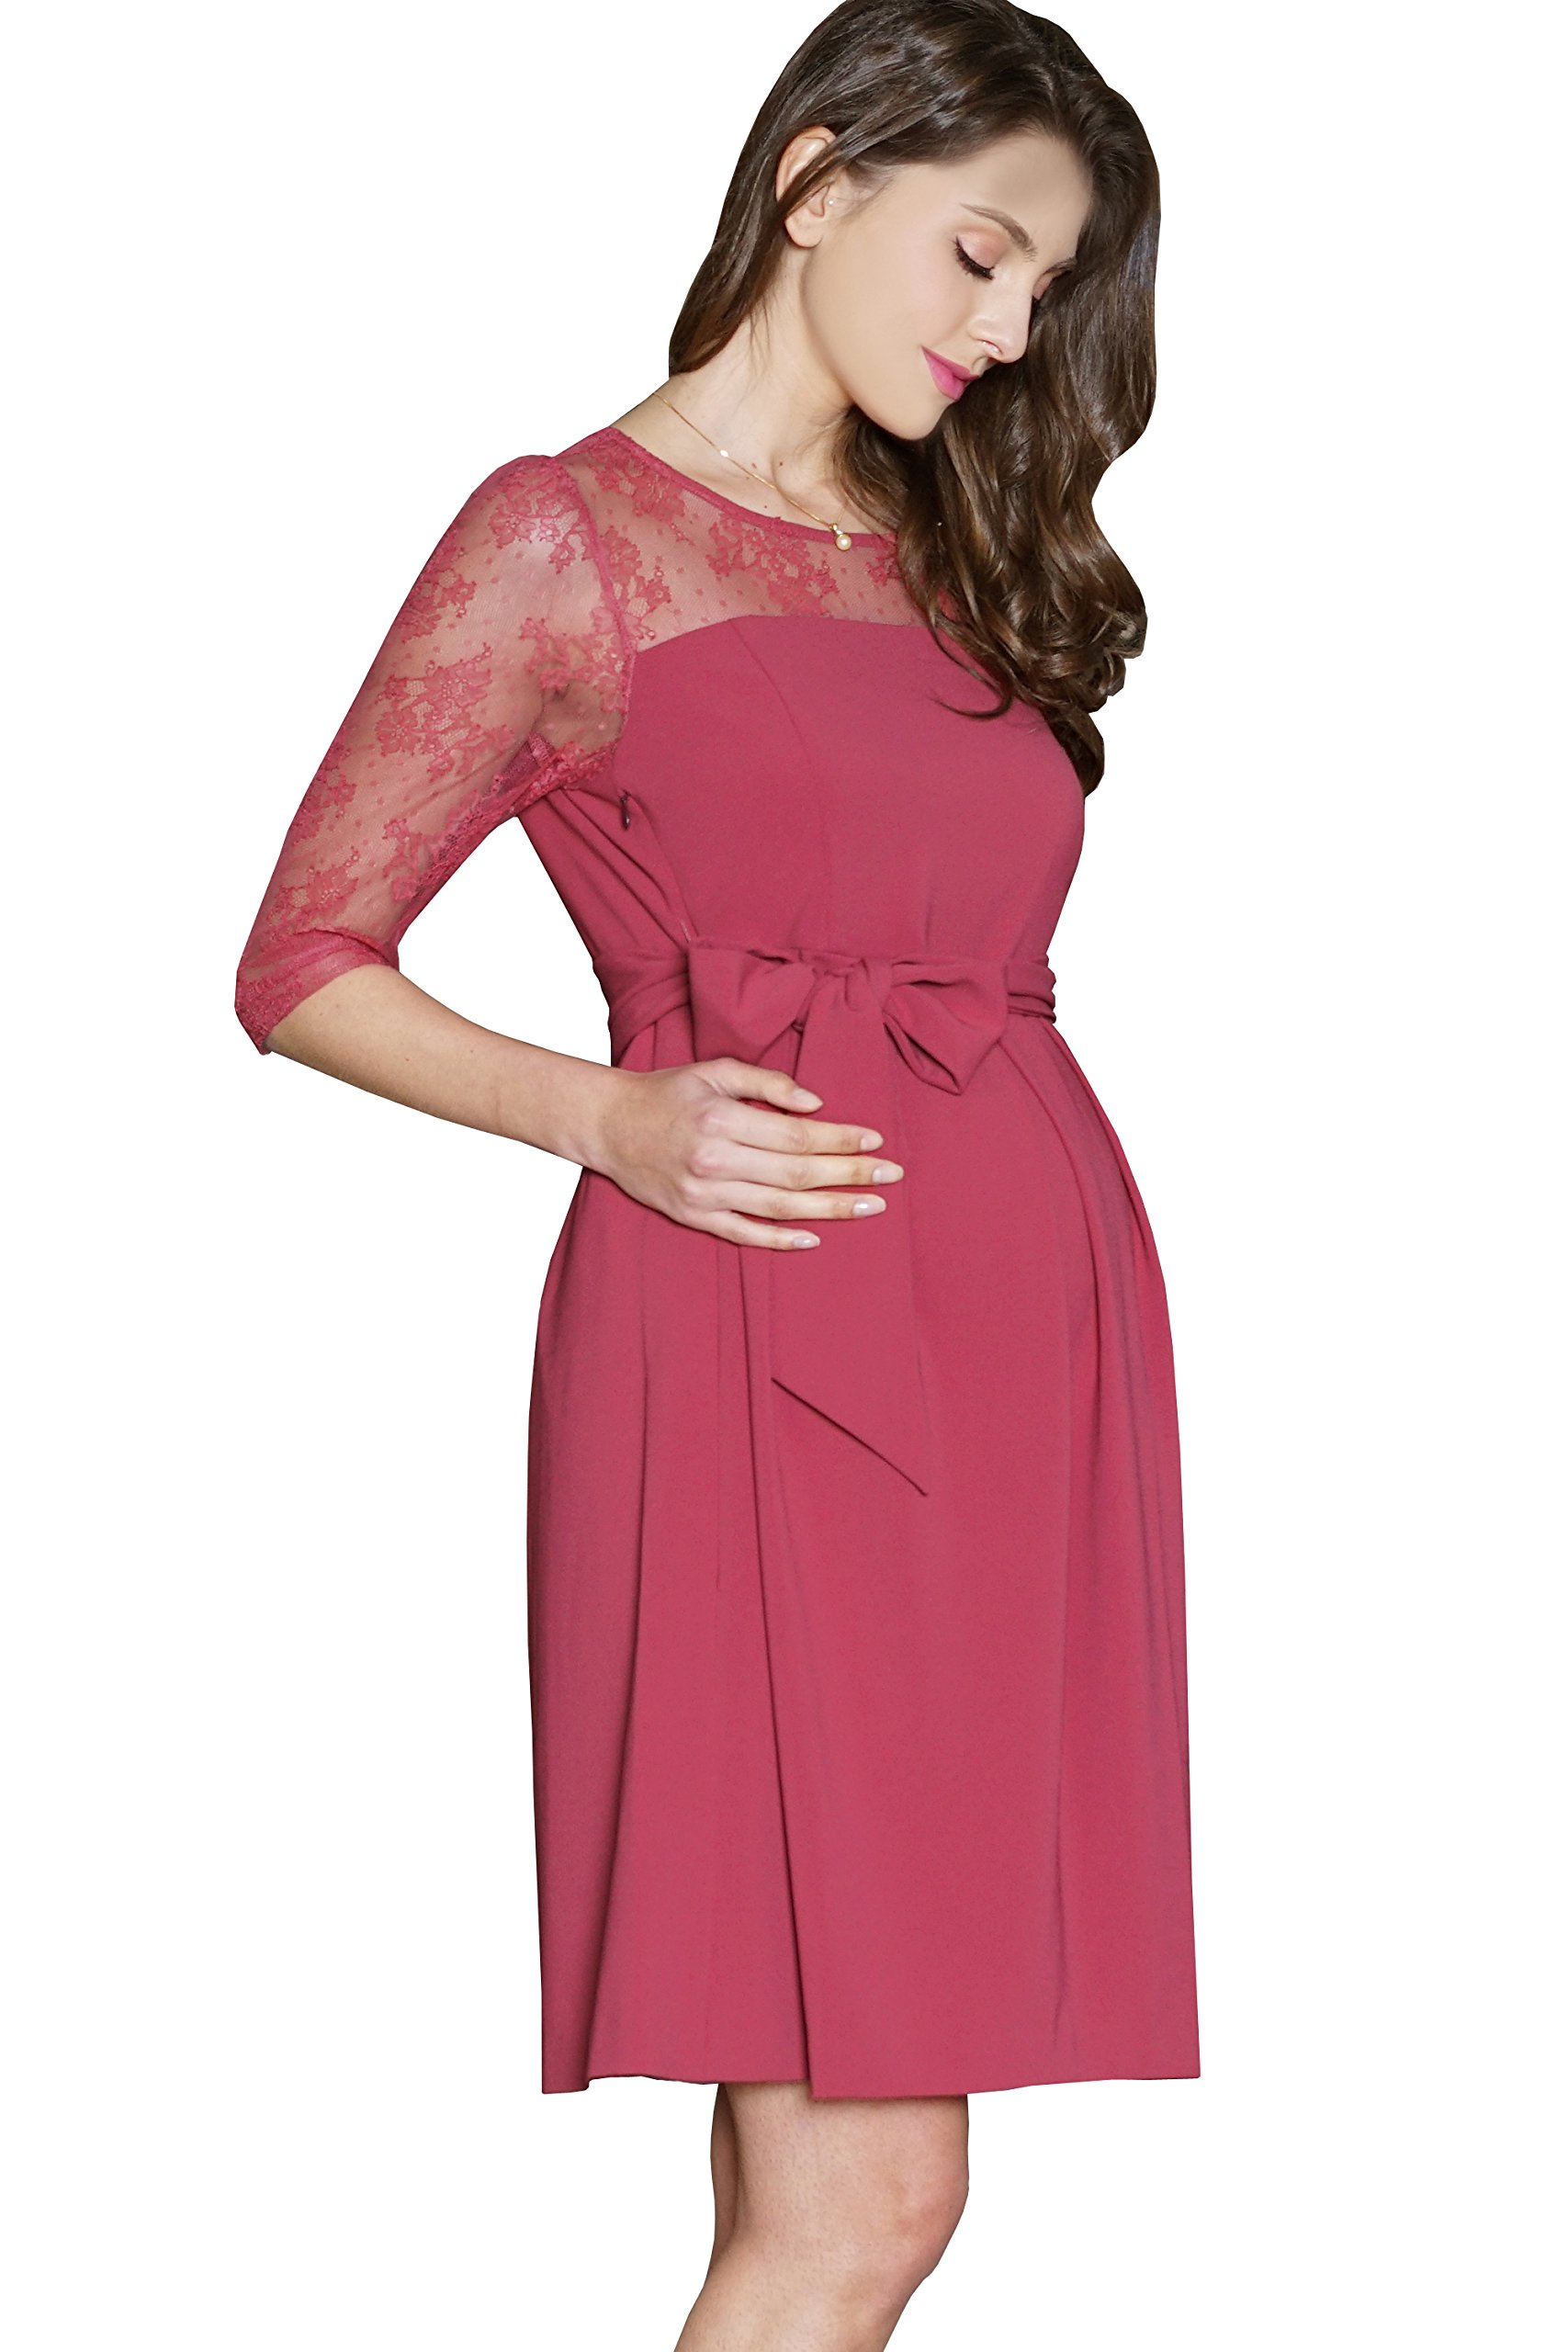 Maternity Nursing Breastfeeding Summer Formal Floral Lace Waist Tie Baby Shower Dress 3/4 Sleeve, Rose, M (US Size: 4-6) by Sweet Mommy